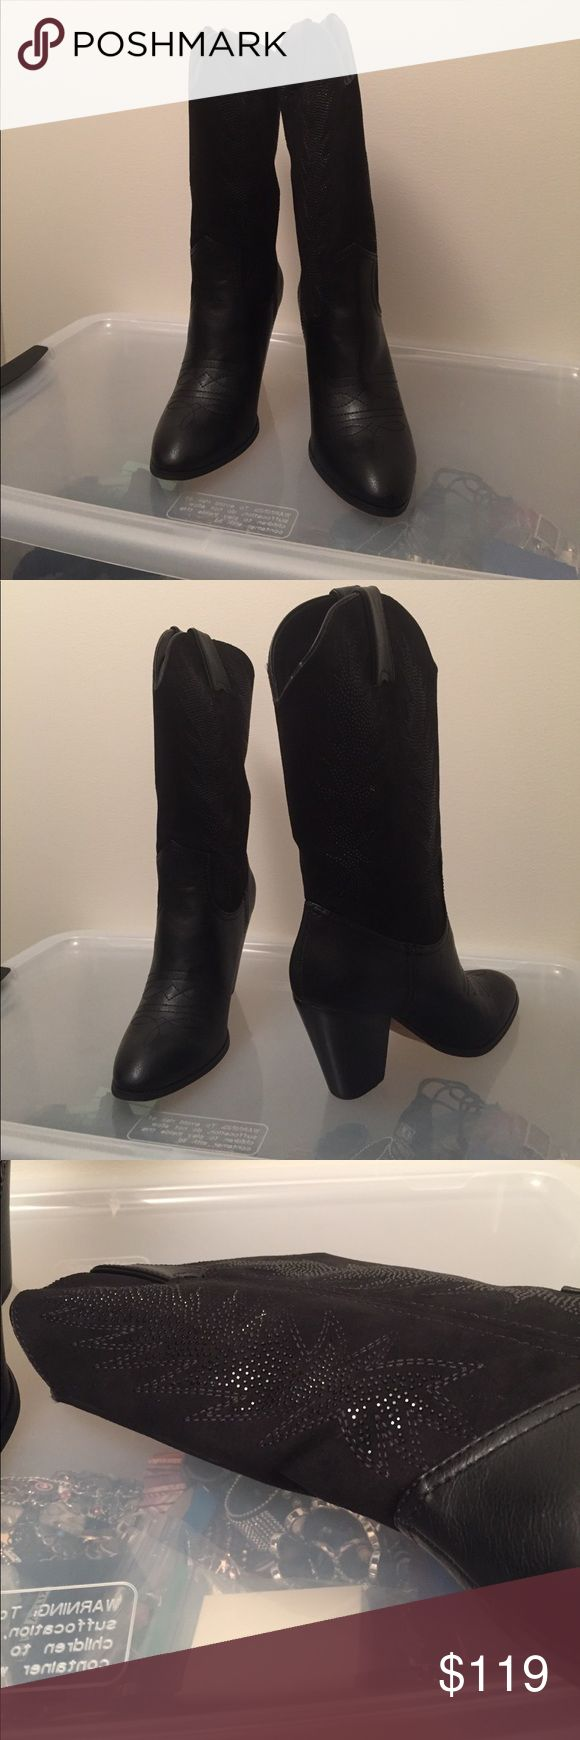 Miranda Lambert's black boots New with box even though they were tried on twice and still didn't feel comfortable on my long narrow feet 😒 Miranda by Miranda Lambert Shoes Heeled Boots